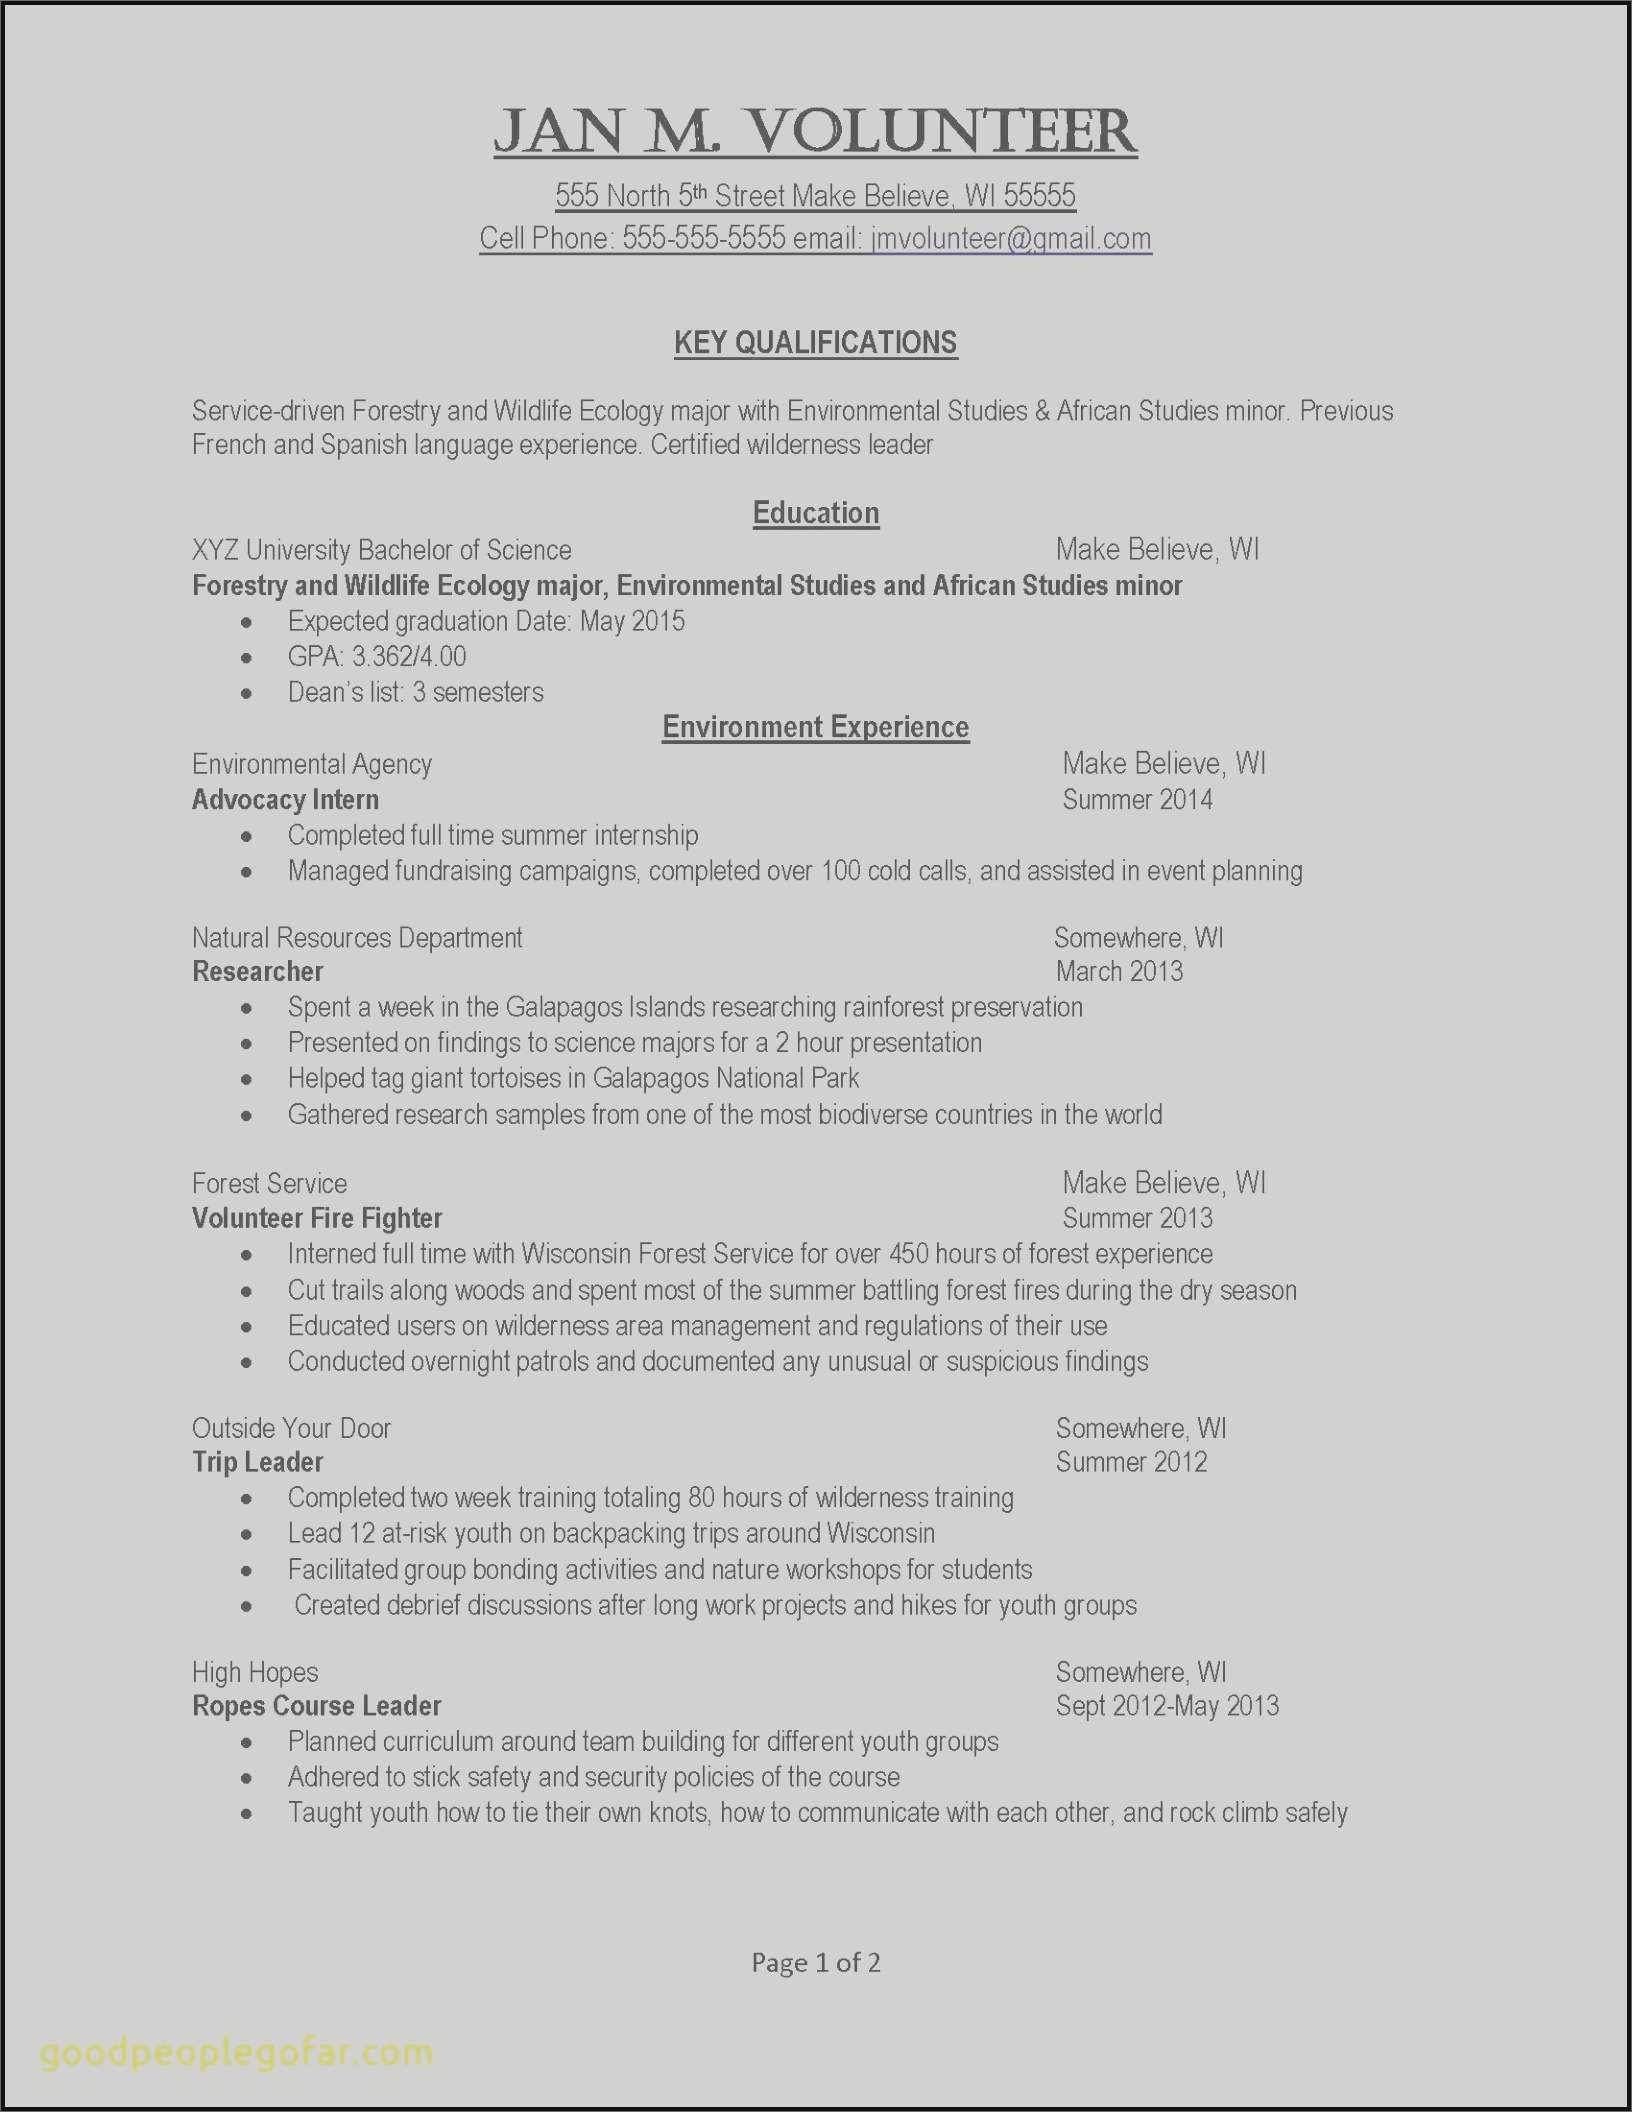 Attorney Resume Template - Summary Qualifications Resume Example Fresh attorney Resume